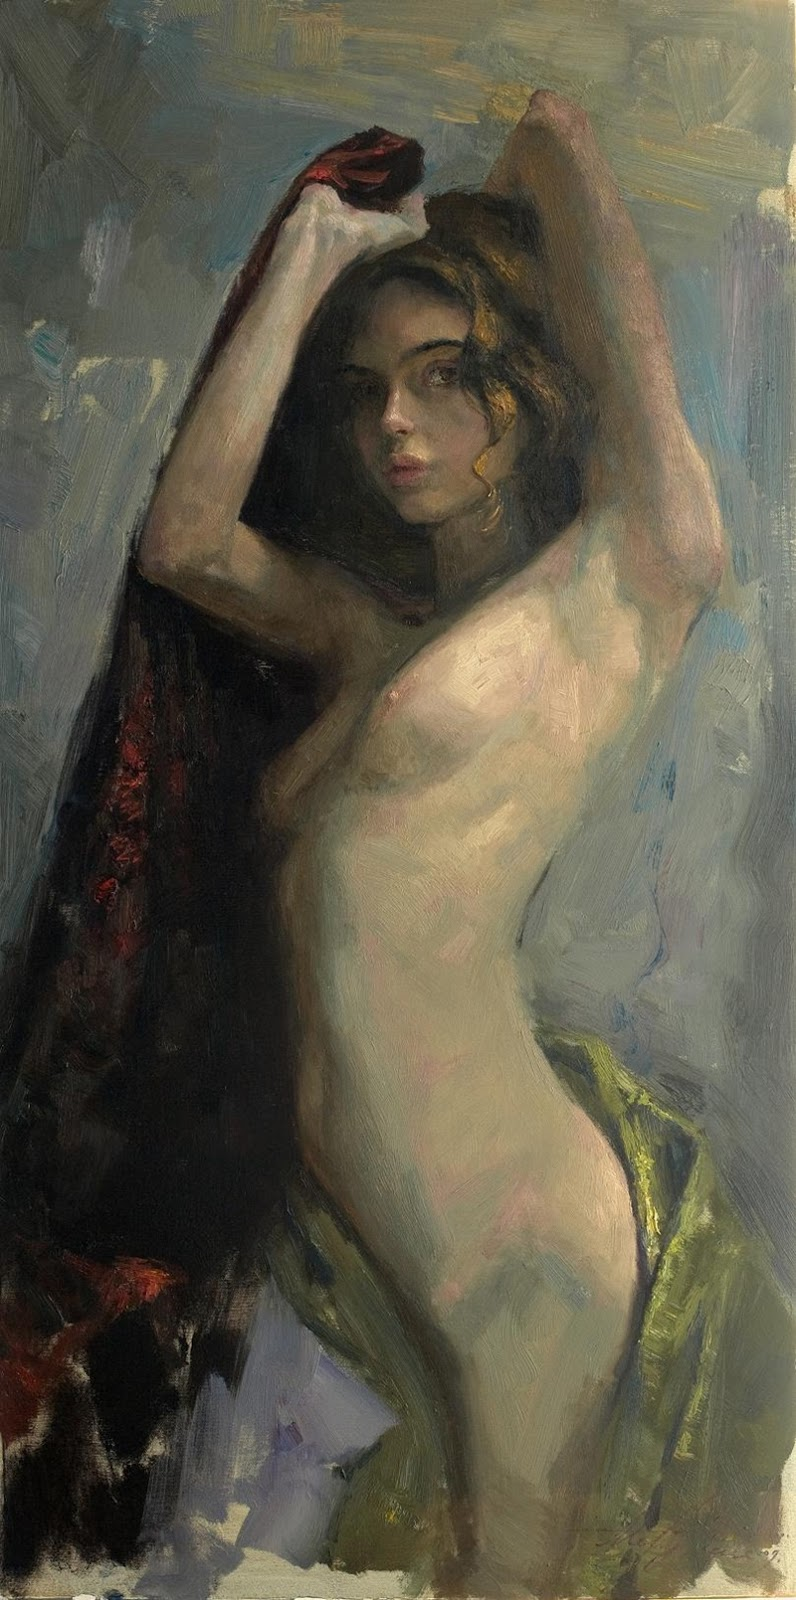 Alexey Steele 1967 - Russian-born American painter - The Novorealism Movement - Tutt'Art@ (34)